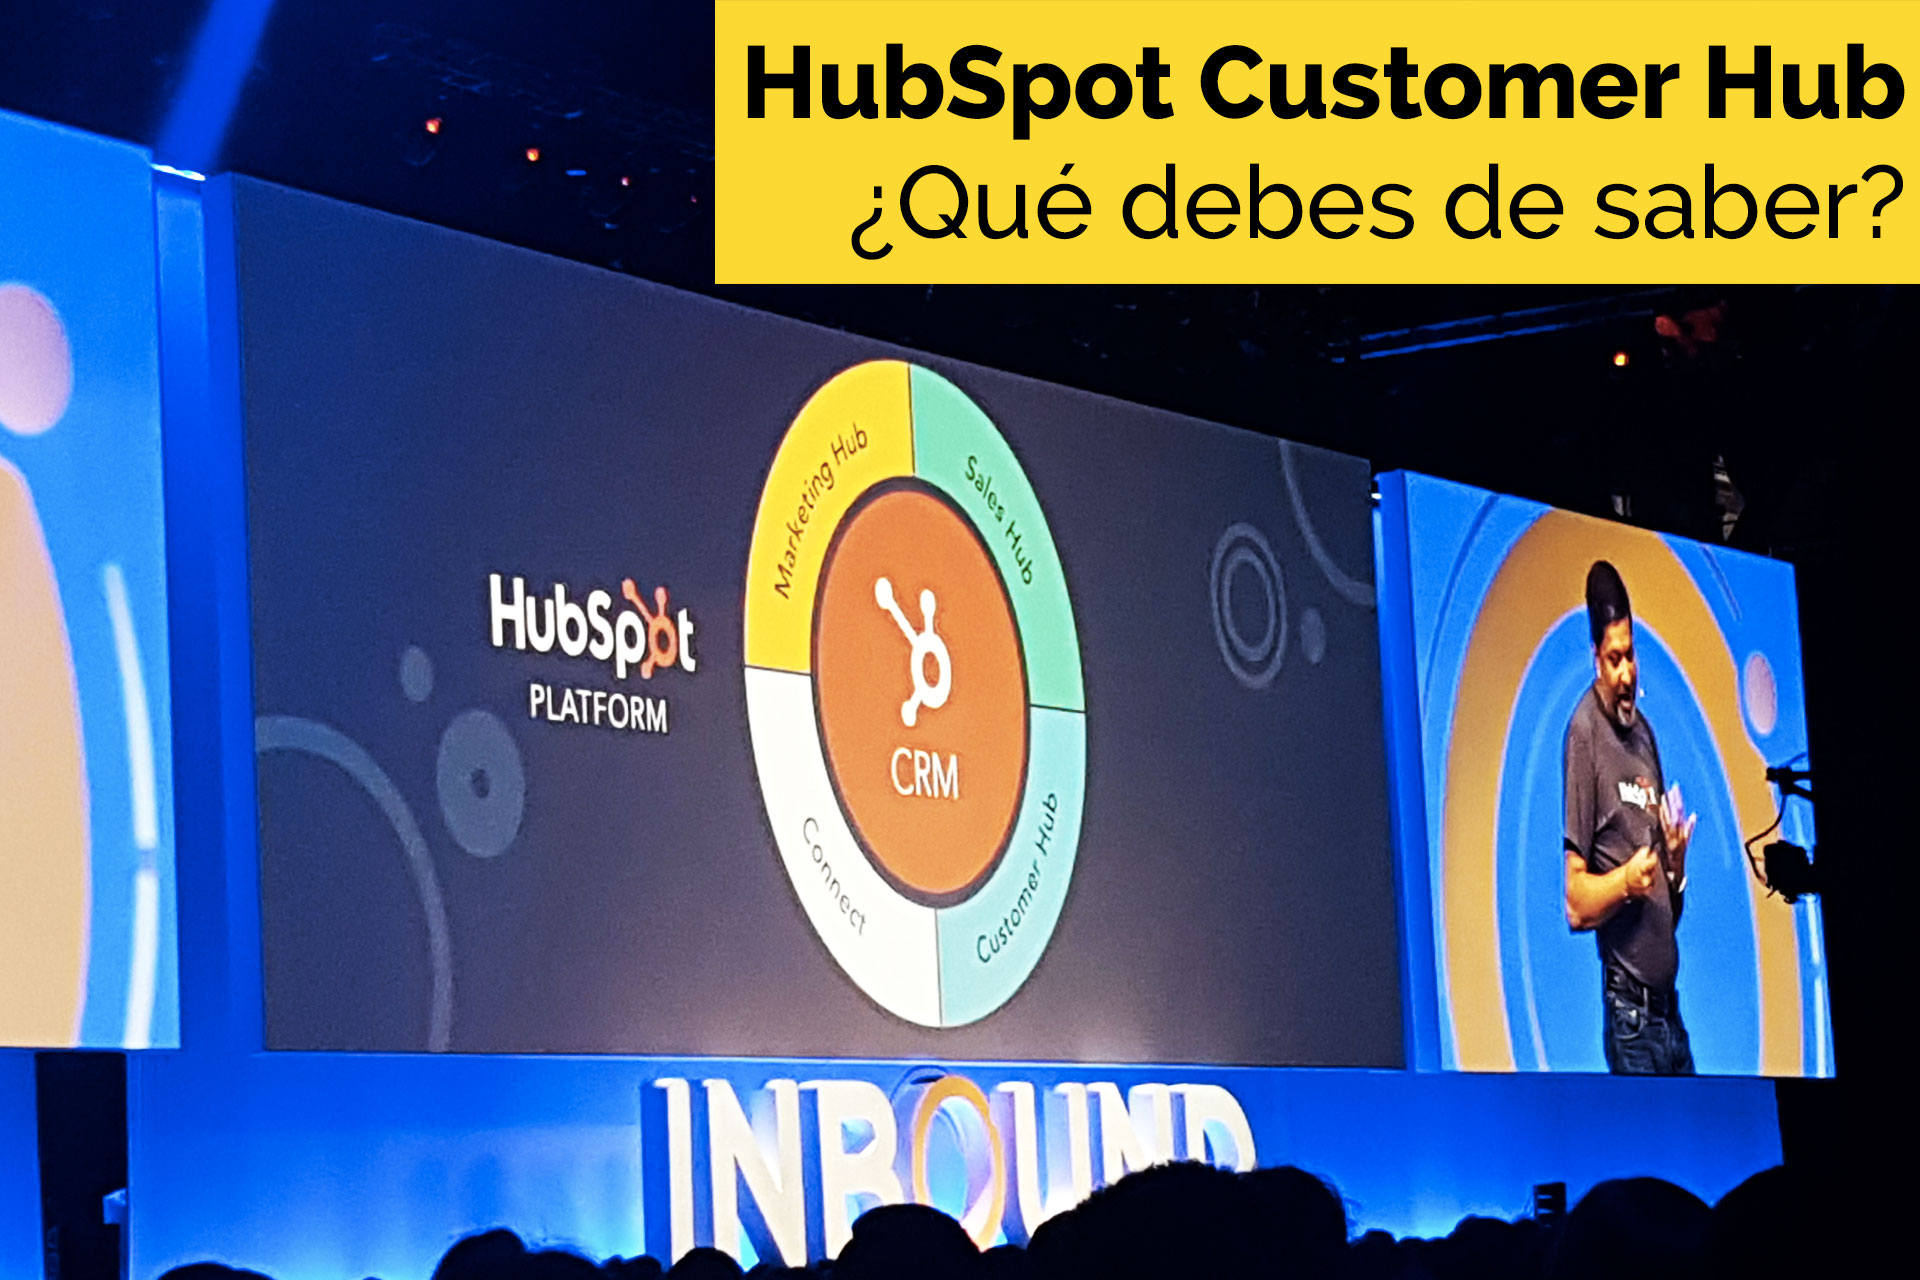 hubspot-customer-hub.jpg